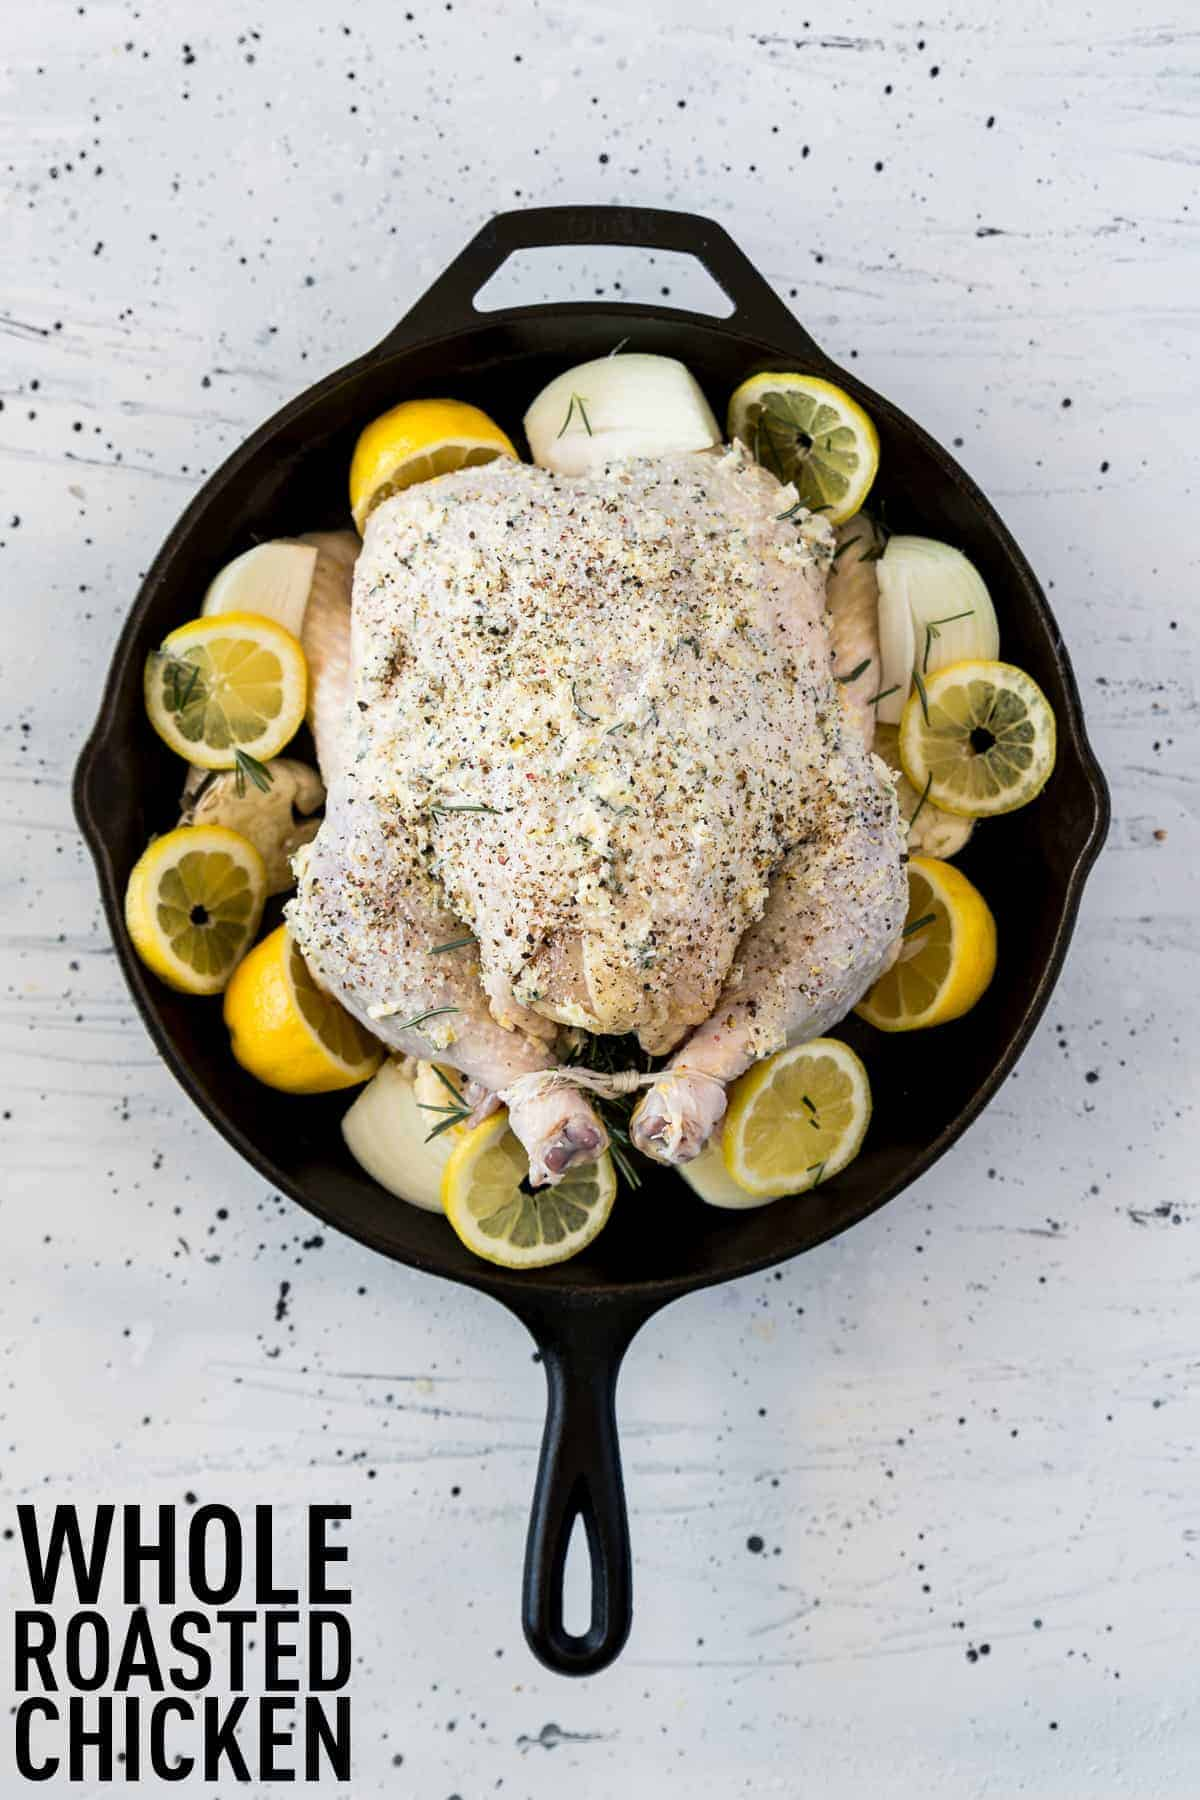 How to cook a whole baked chicken in a few simple steps to yield a moist, flavor-packed chicken that you can serve for dinner any night of the week.